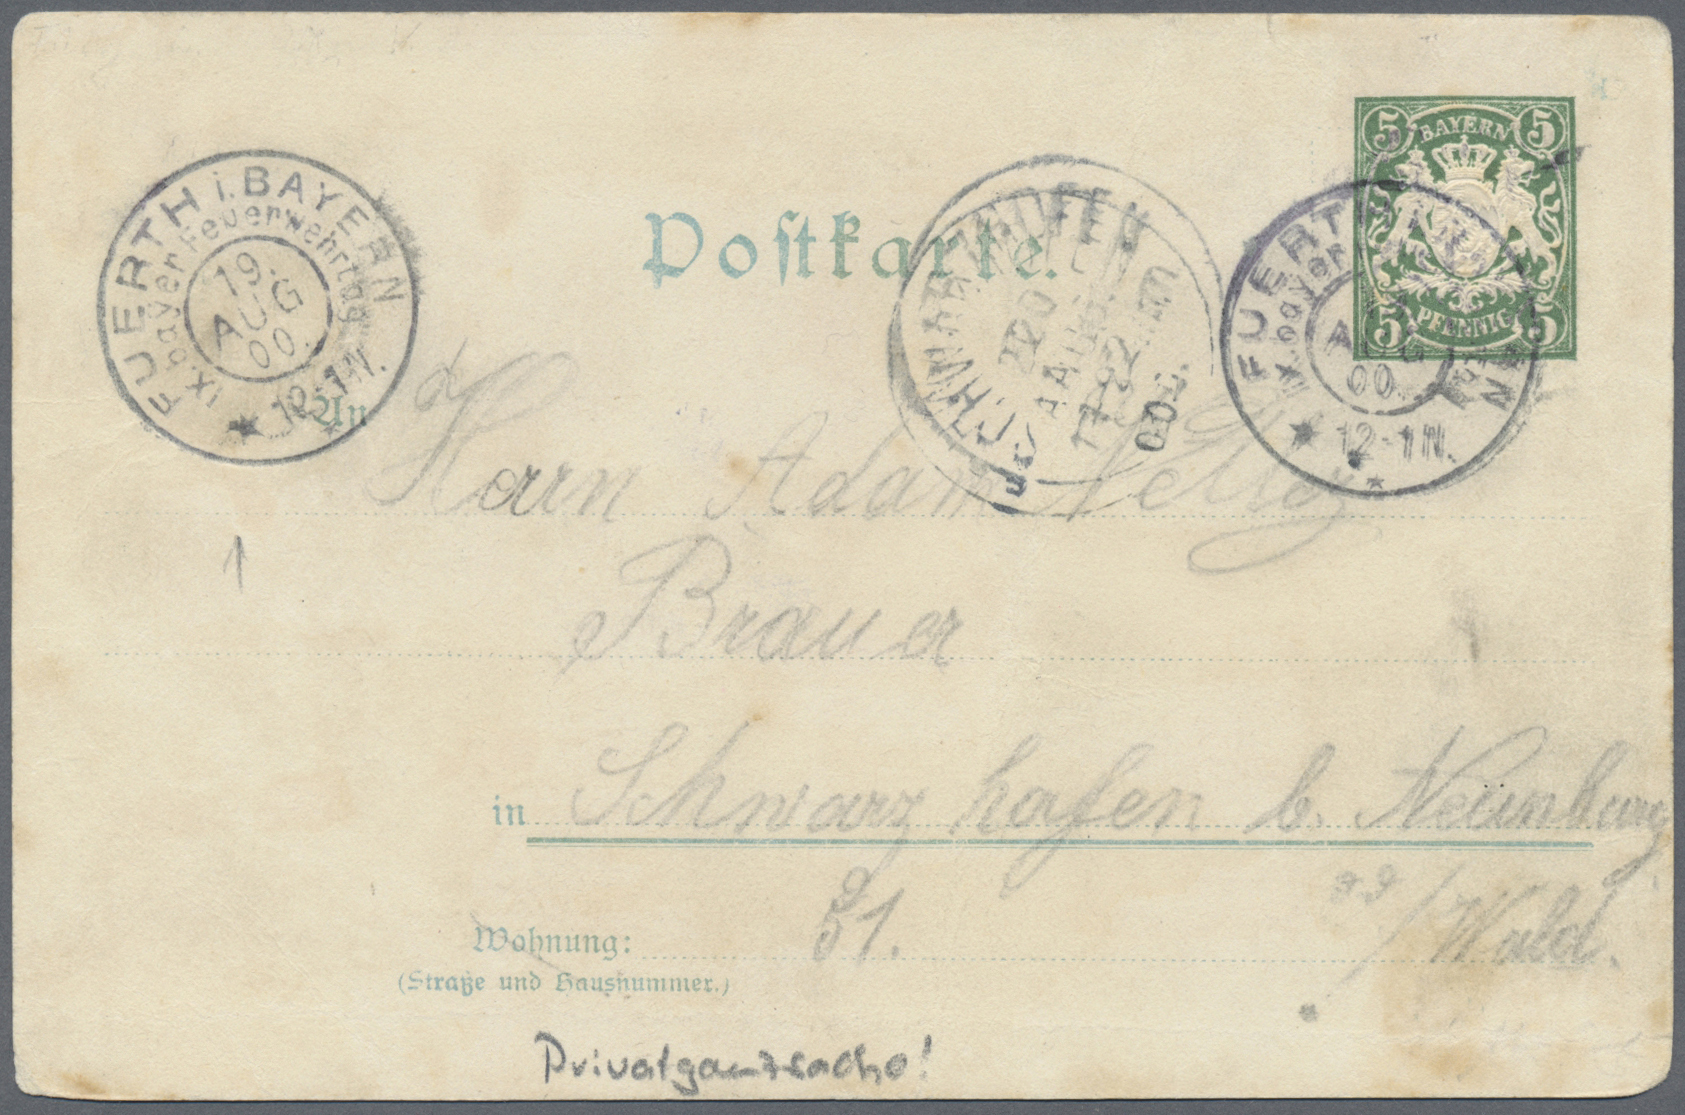 Lot 21204 - ansichtskarten: motive / thematics  -  Auktionshaus Christoph Gärtner GmbH & Co. KG Auction #40 Germany, Picture Post Cards, Collections Overseas, Thematics